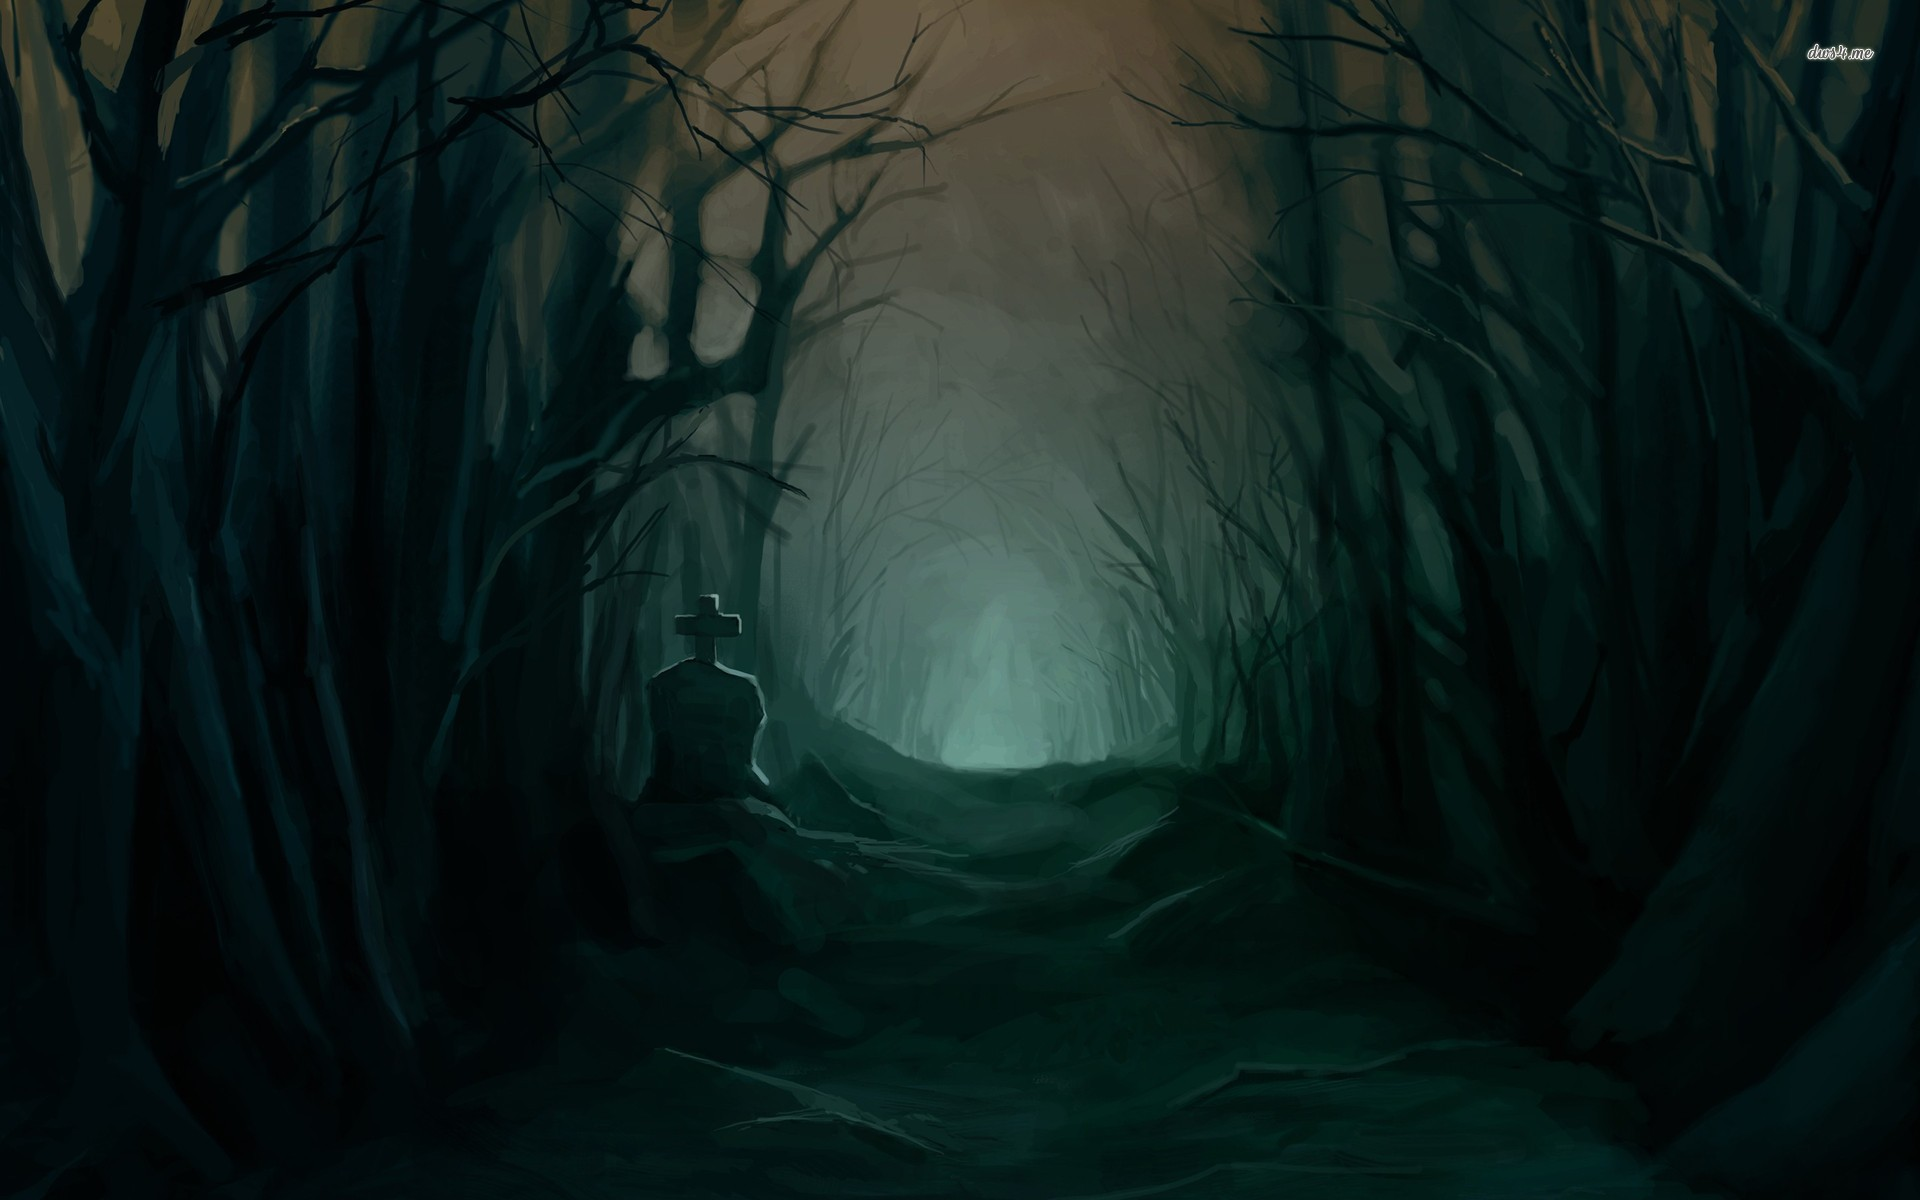 Dark nature clipart background.